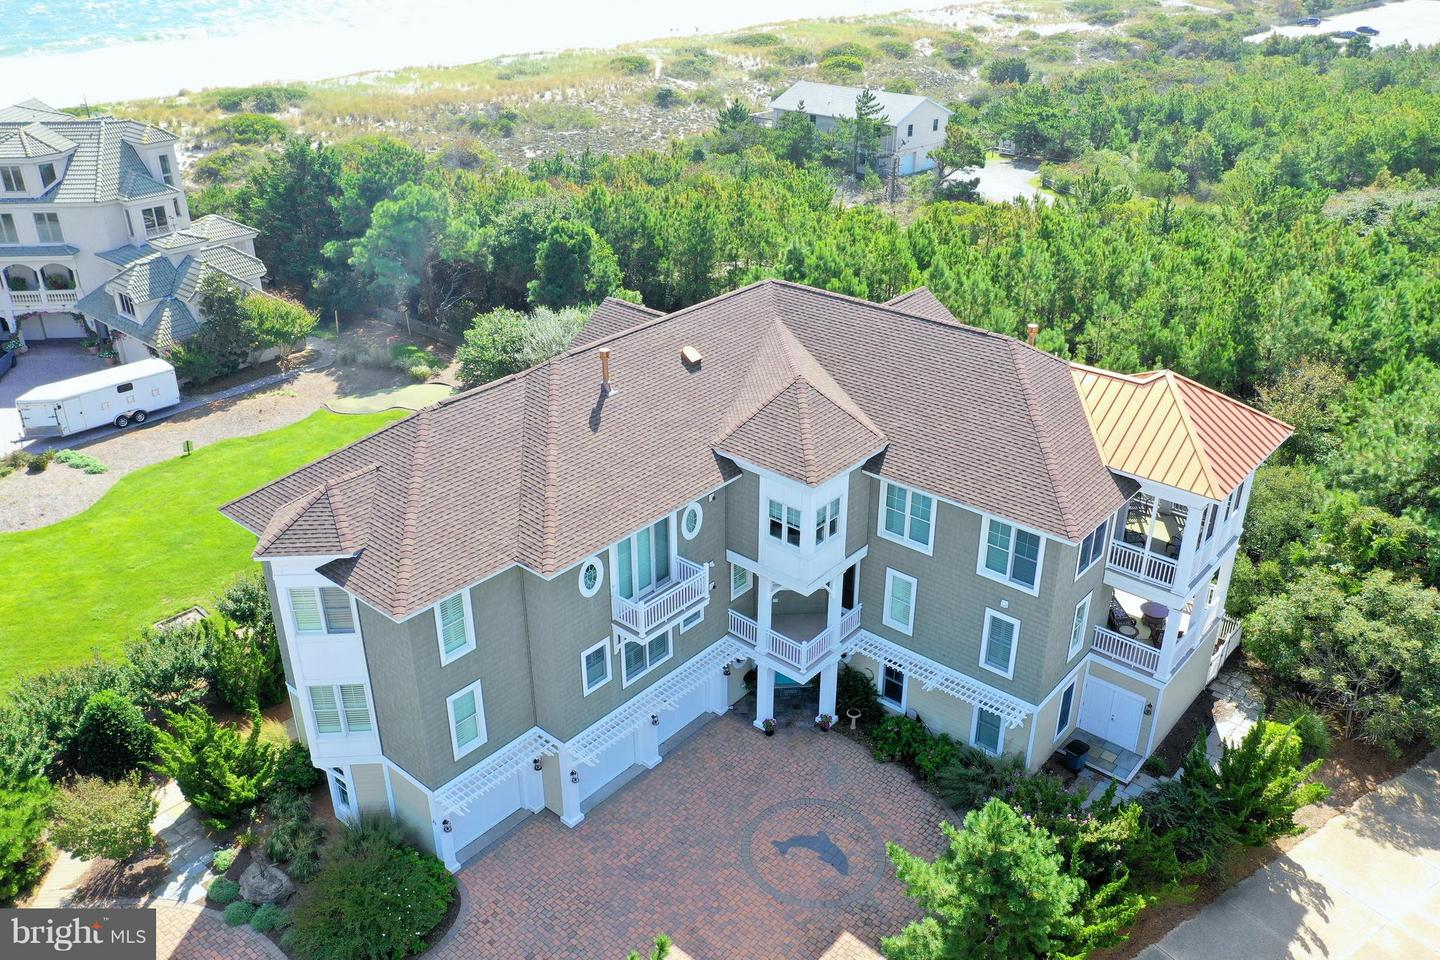 1002293530-300720128890-2018-09-25-15-08-25 31 Hall Ave | Rehoboth Beach, DE Real Estate For Sale | MLS# 1002293530  - 1st Choice Properties